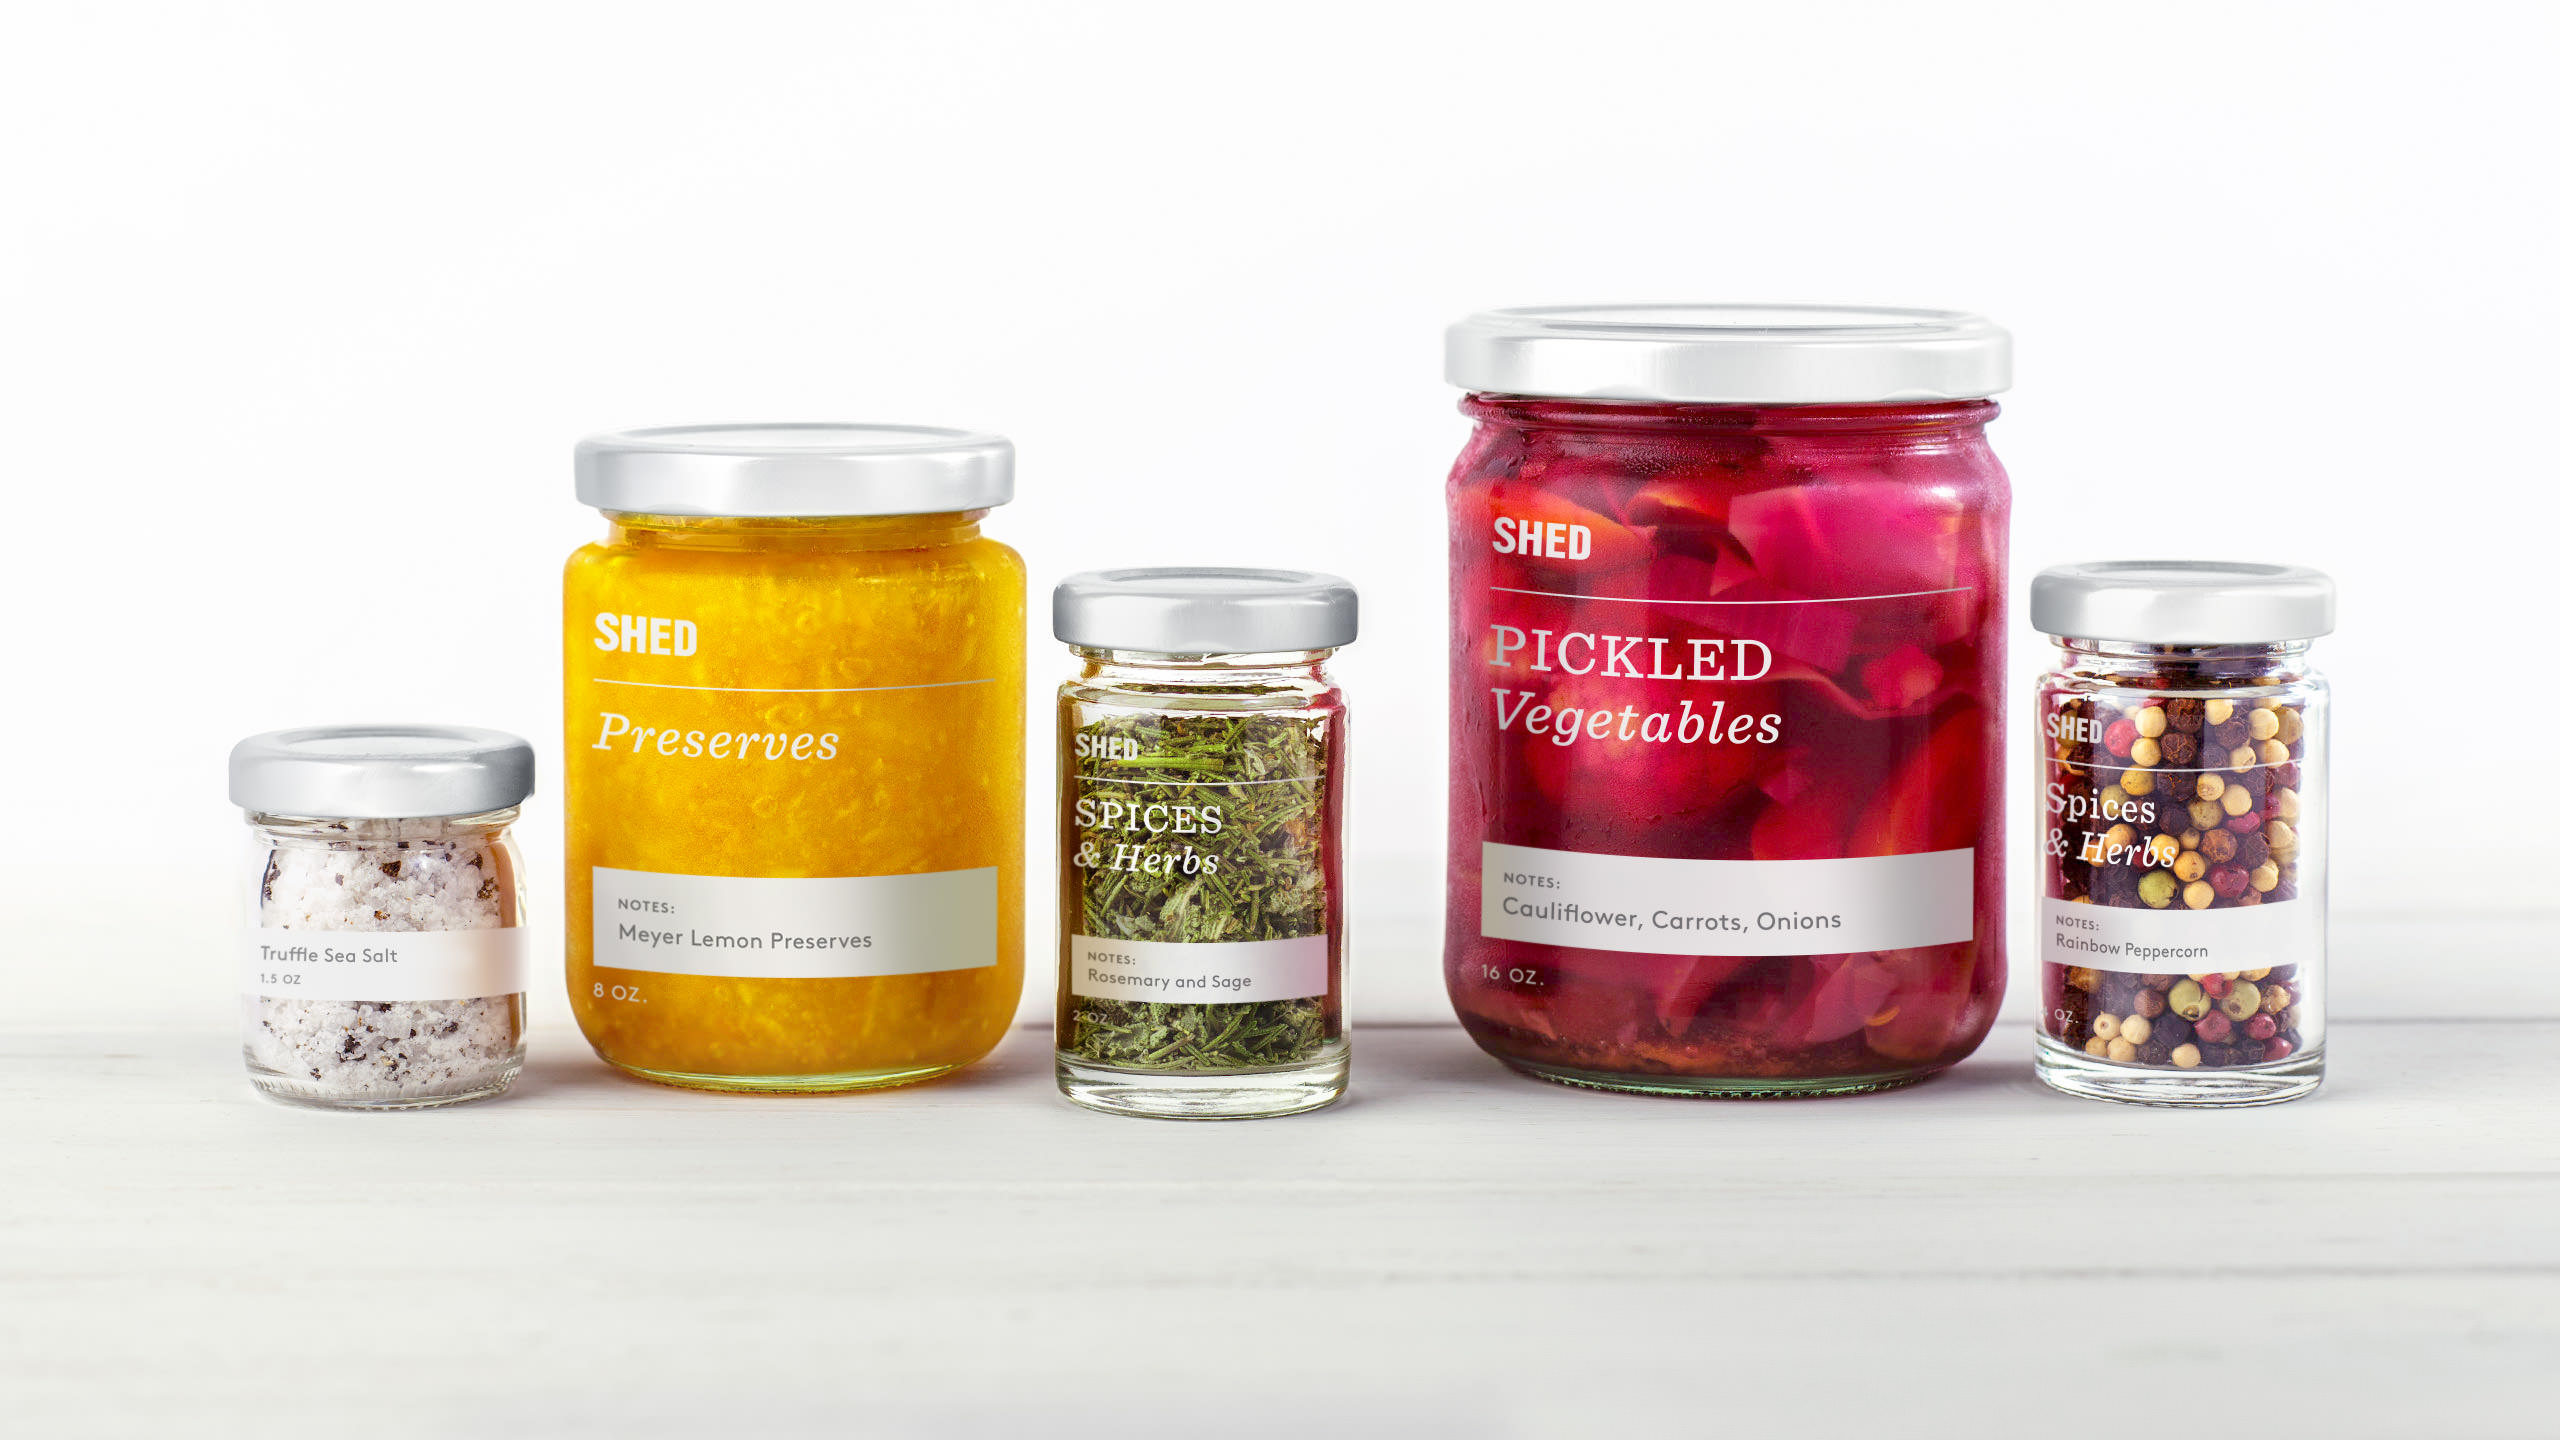 SHED Brand Packaging System - Photography of Preserves, Spices, and Pickled Vegetables